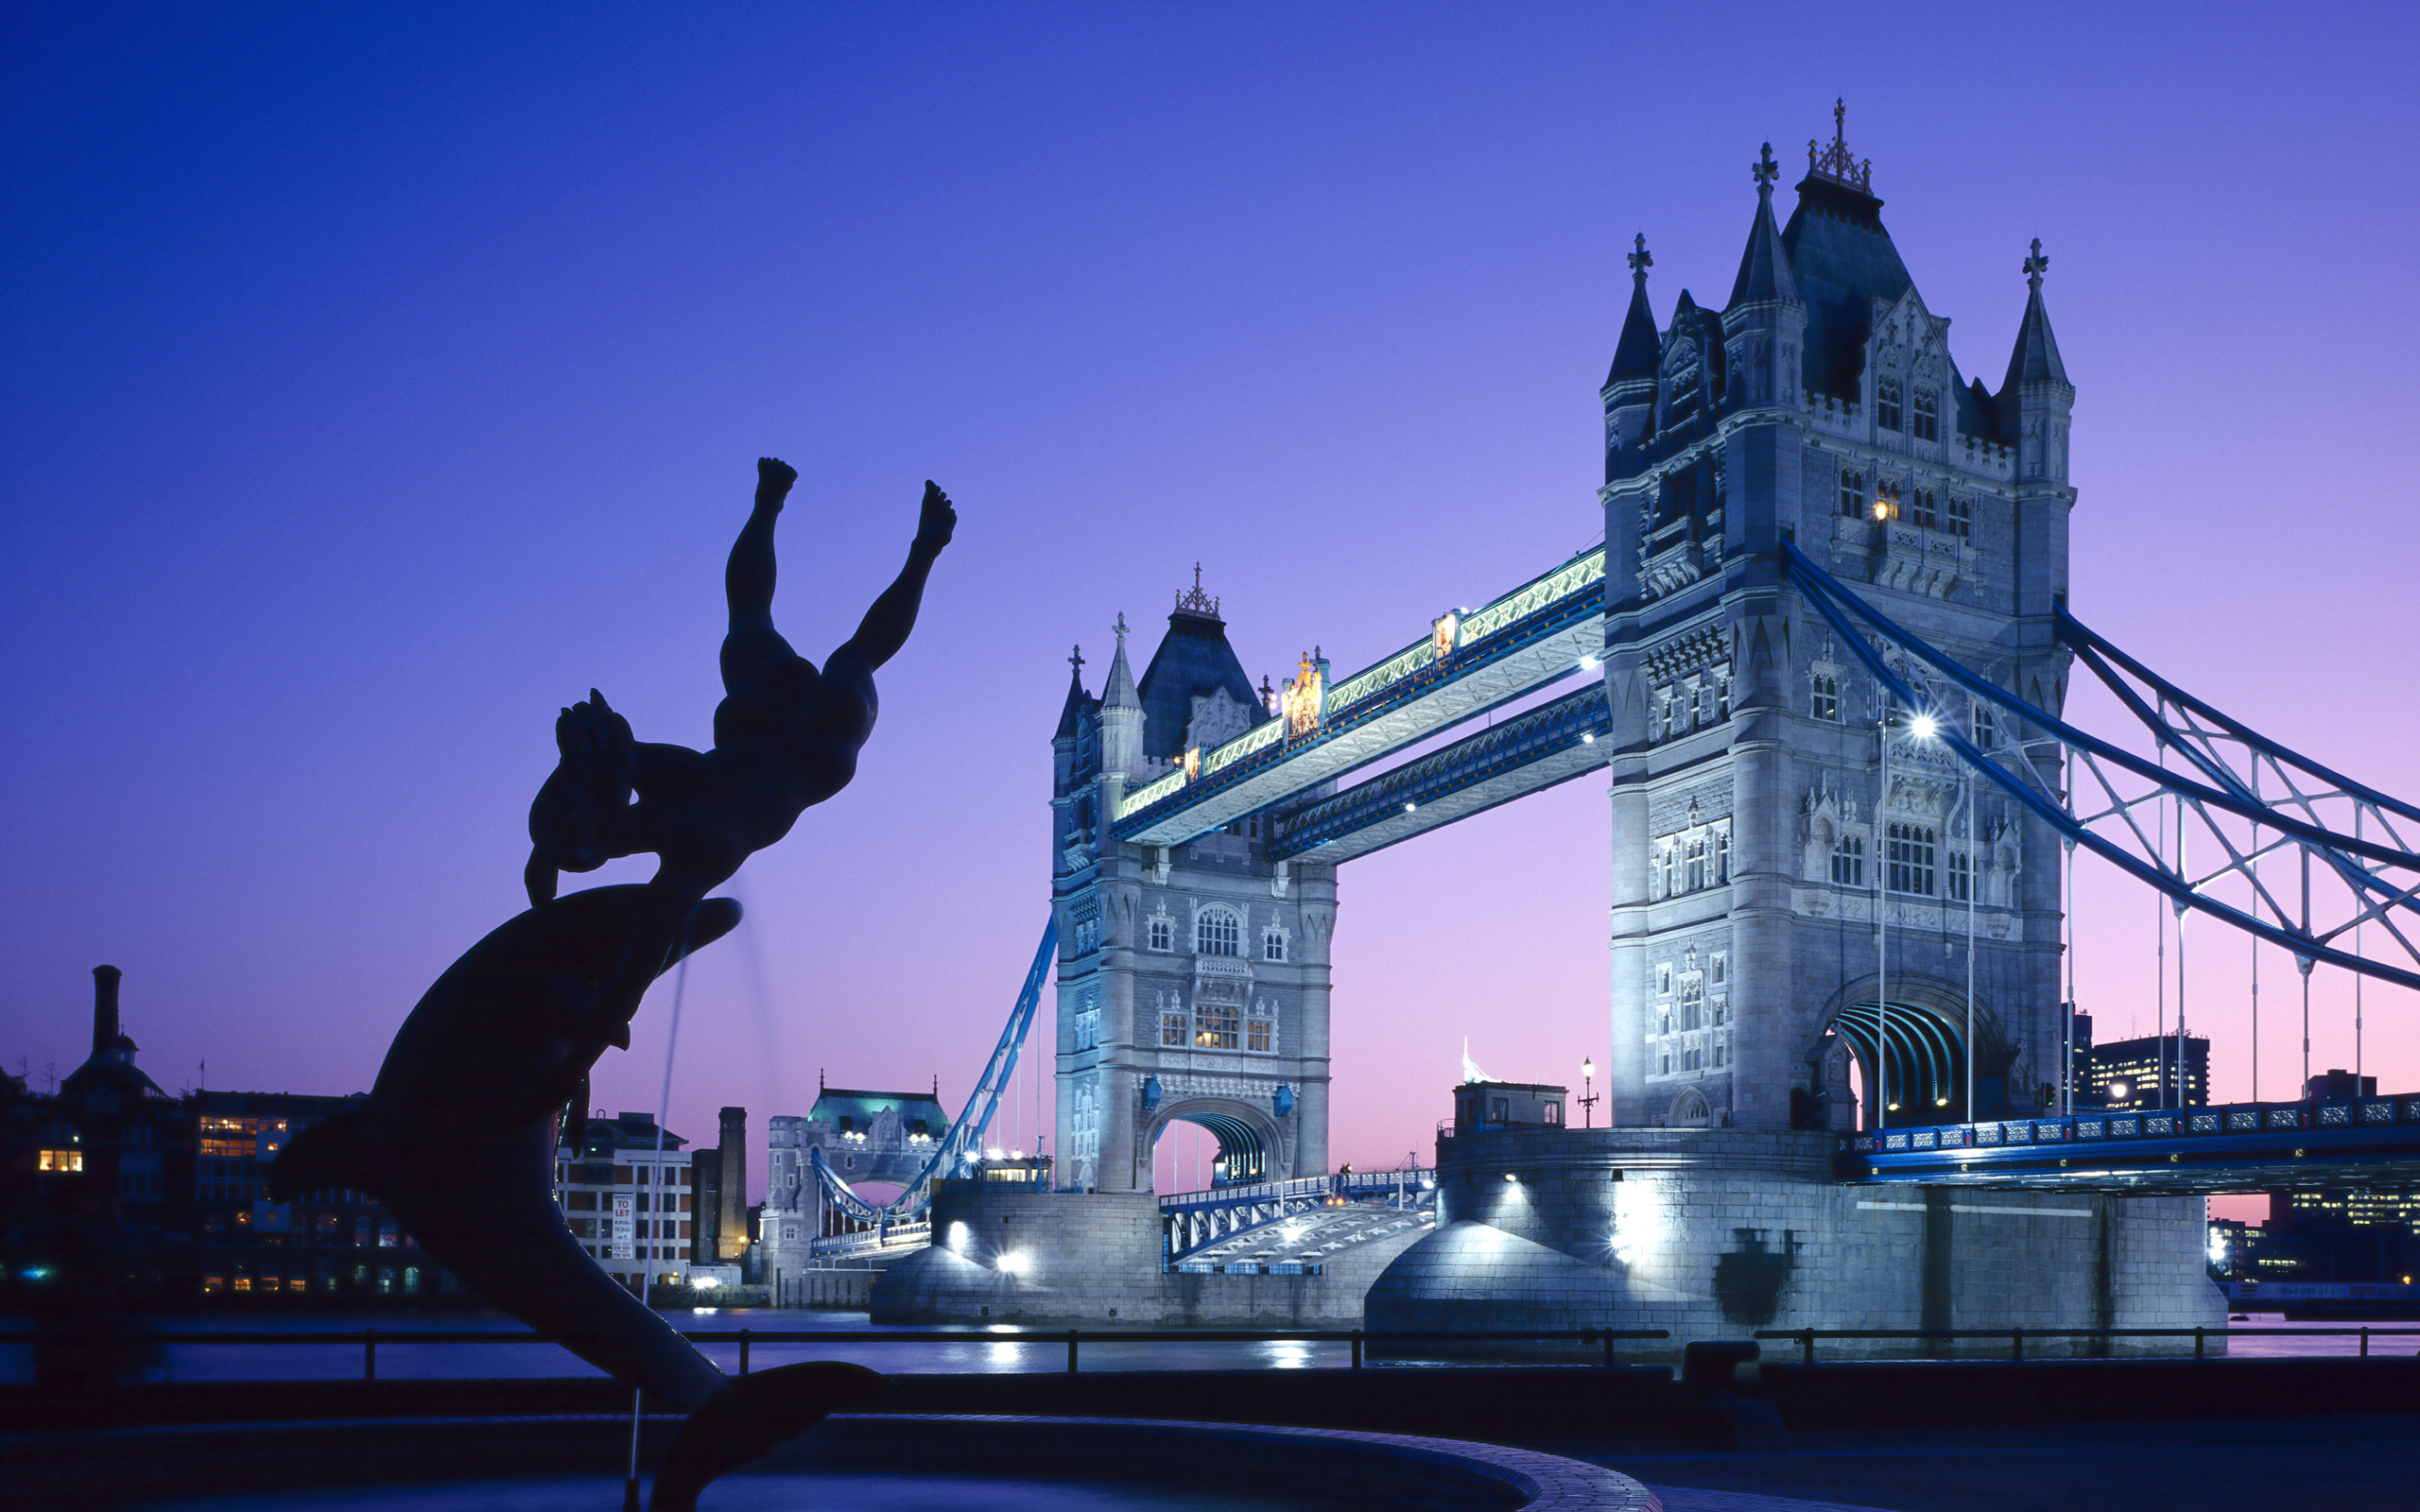 Download London Tower Bridge Wallpaper pictures in high 2560x1600